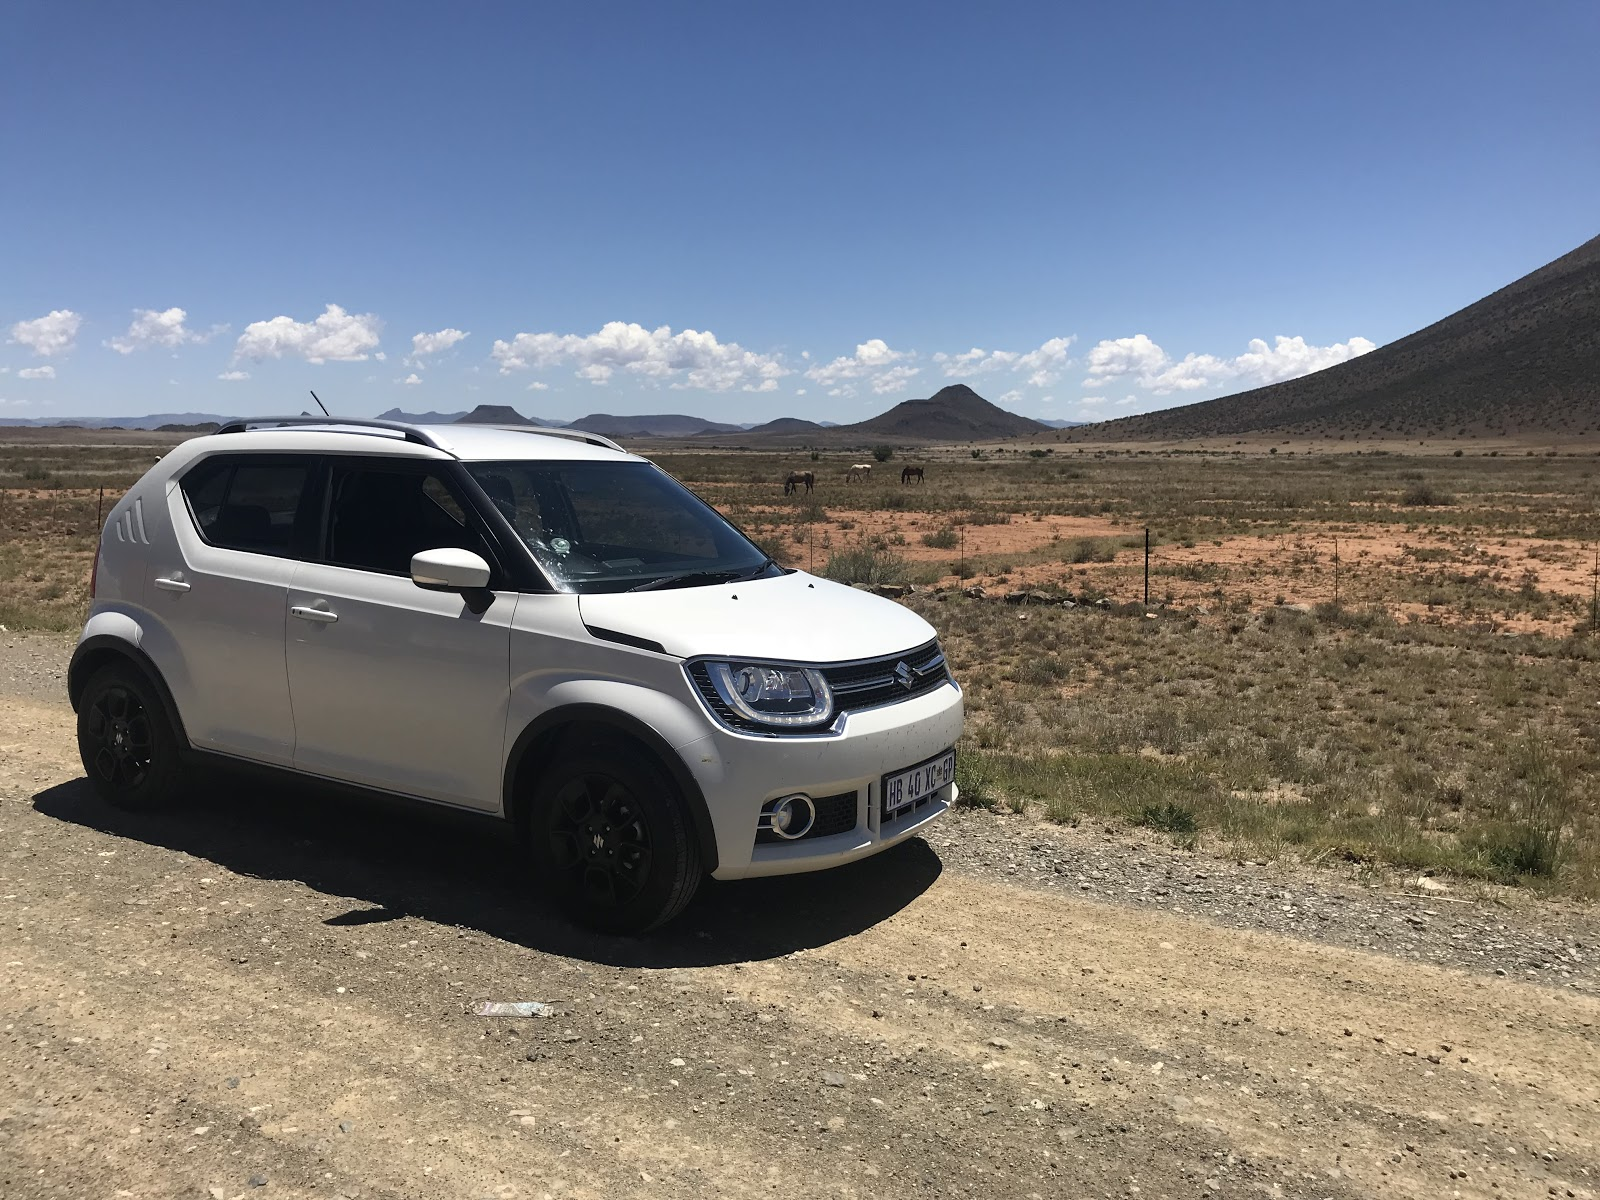 Suzuki Ignis on the road